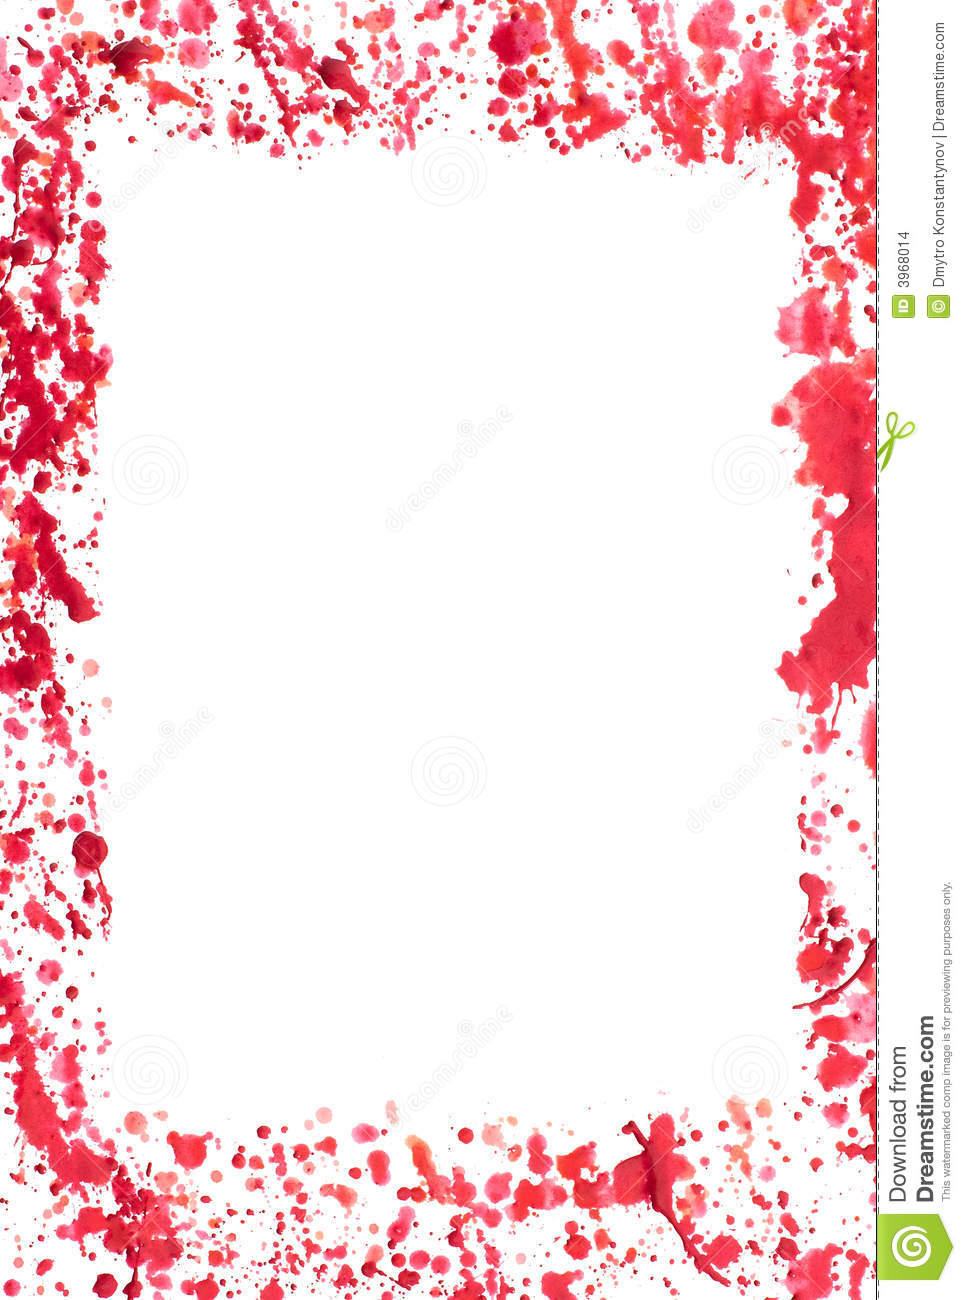 bloody frame stock photo image of blot dots grunge